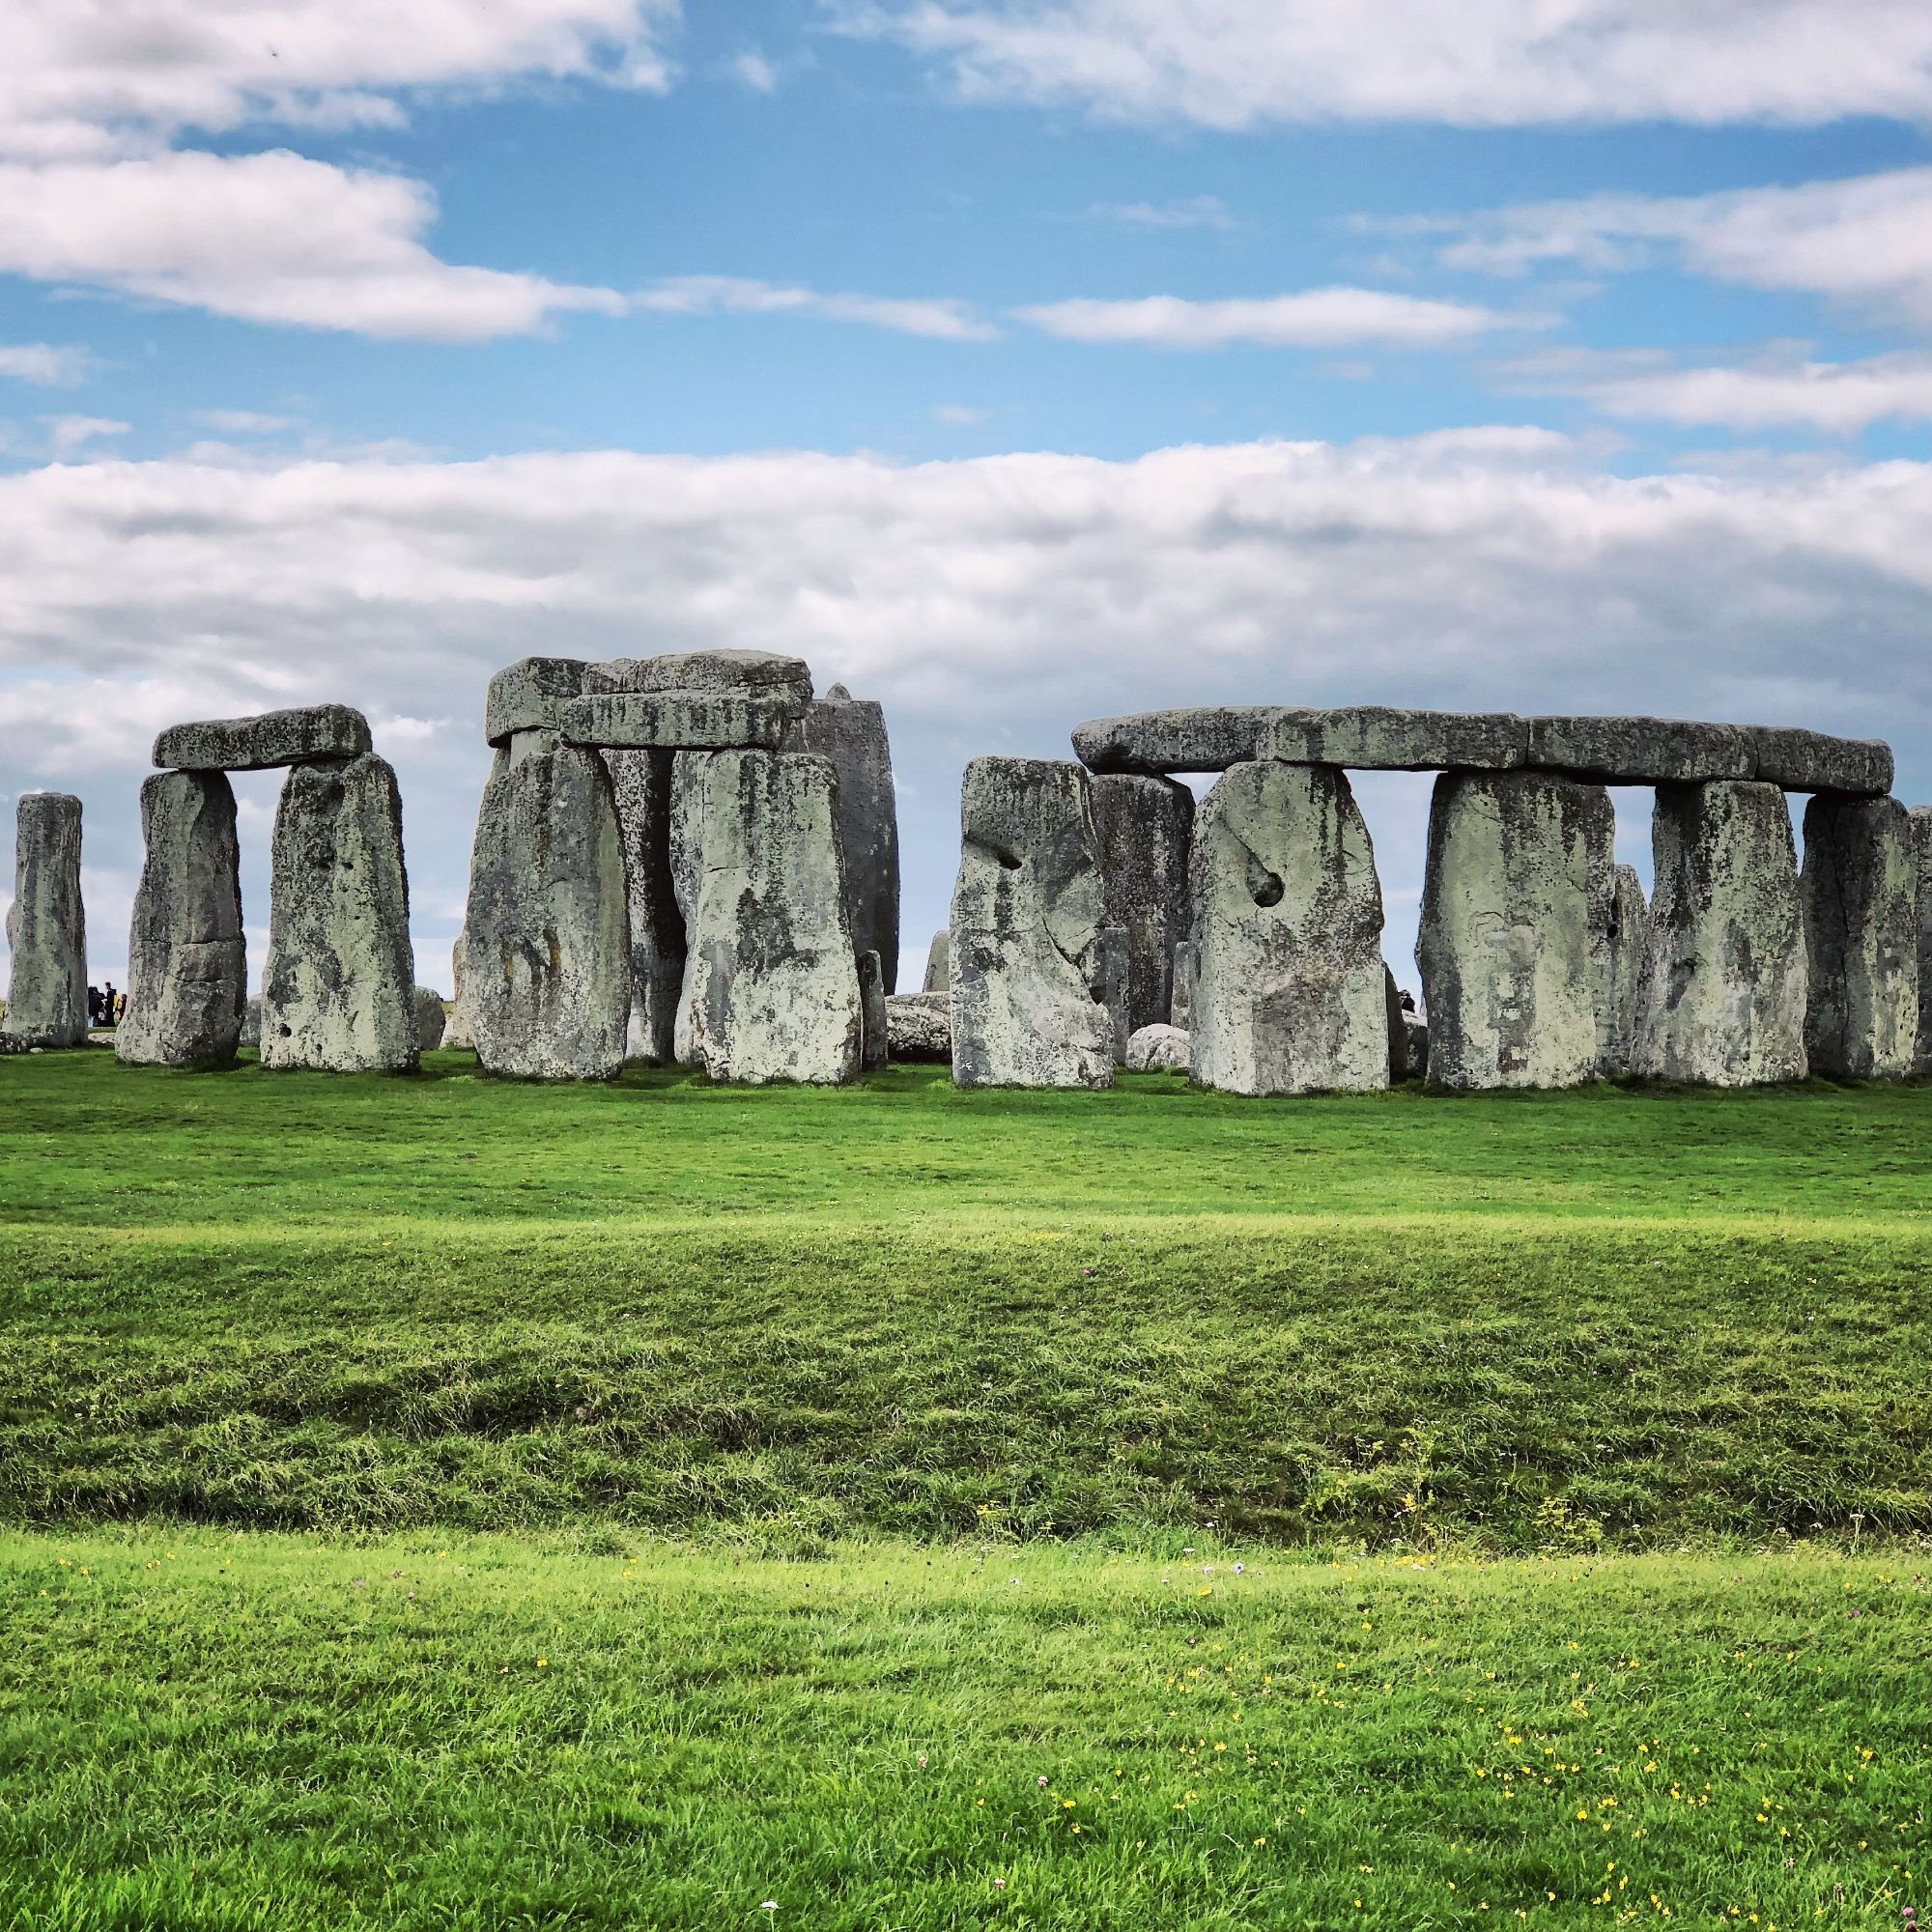 Free stock photo Stone Henge UK